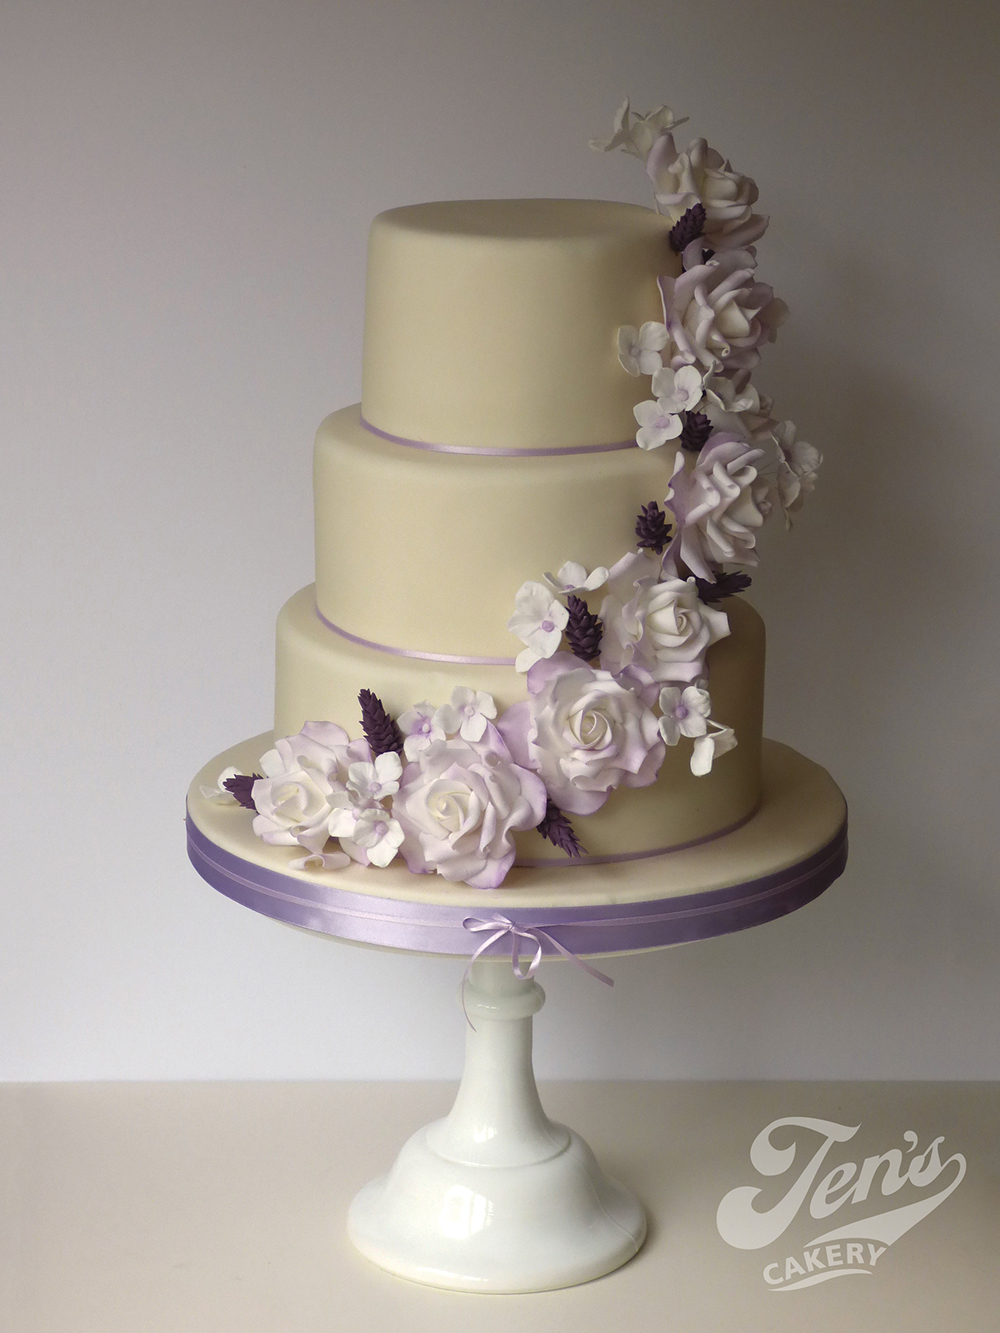 A wedding cake with a cascade of sugar roses and lavender